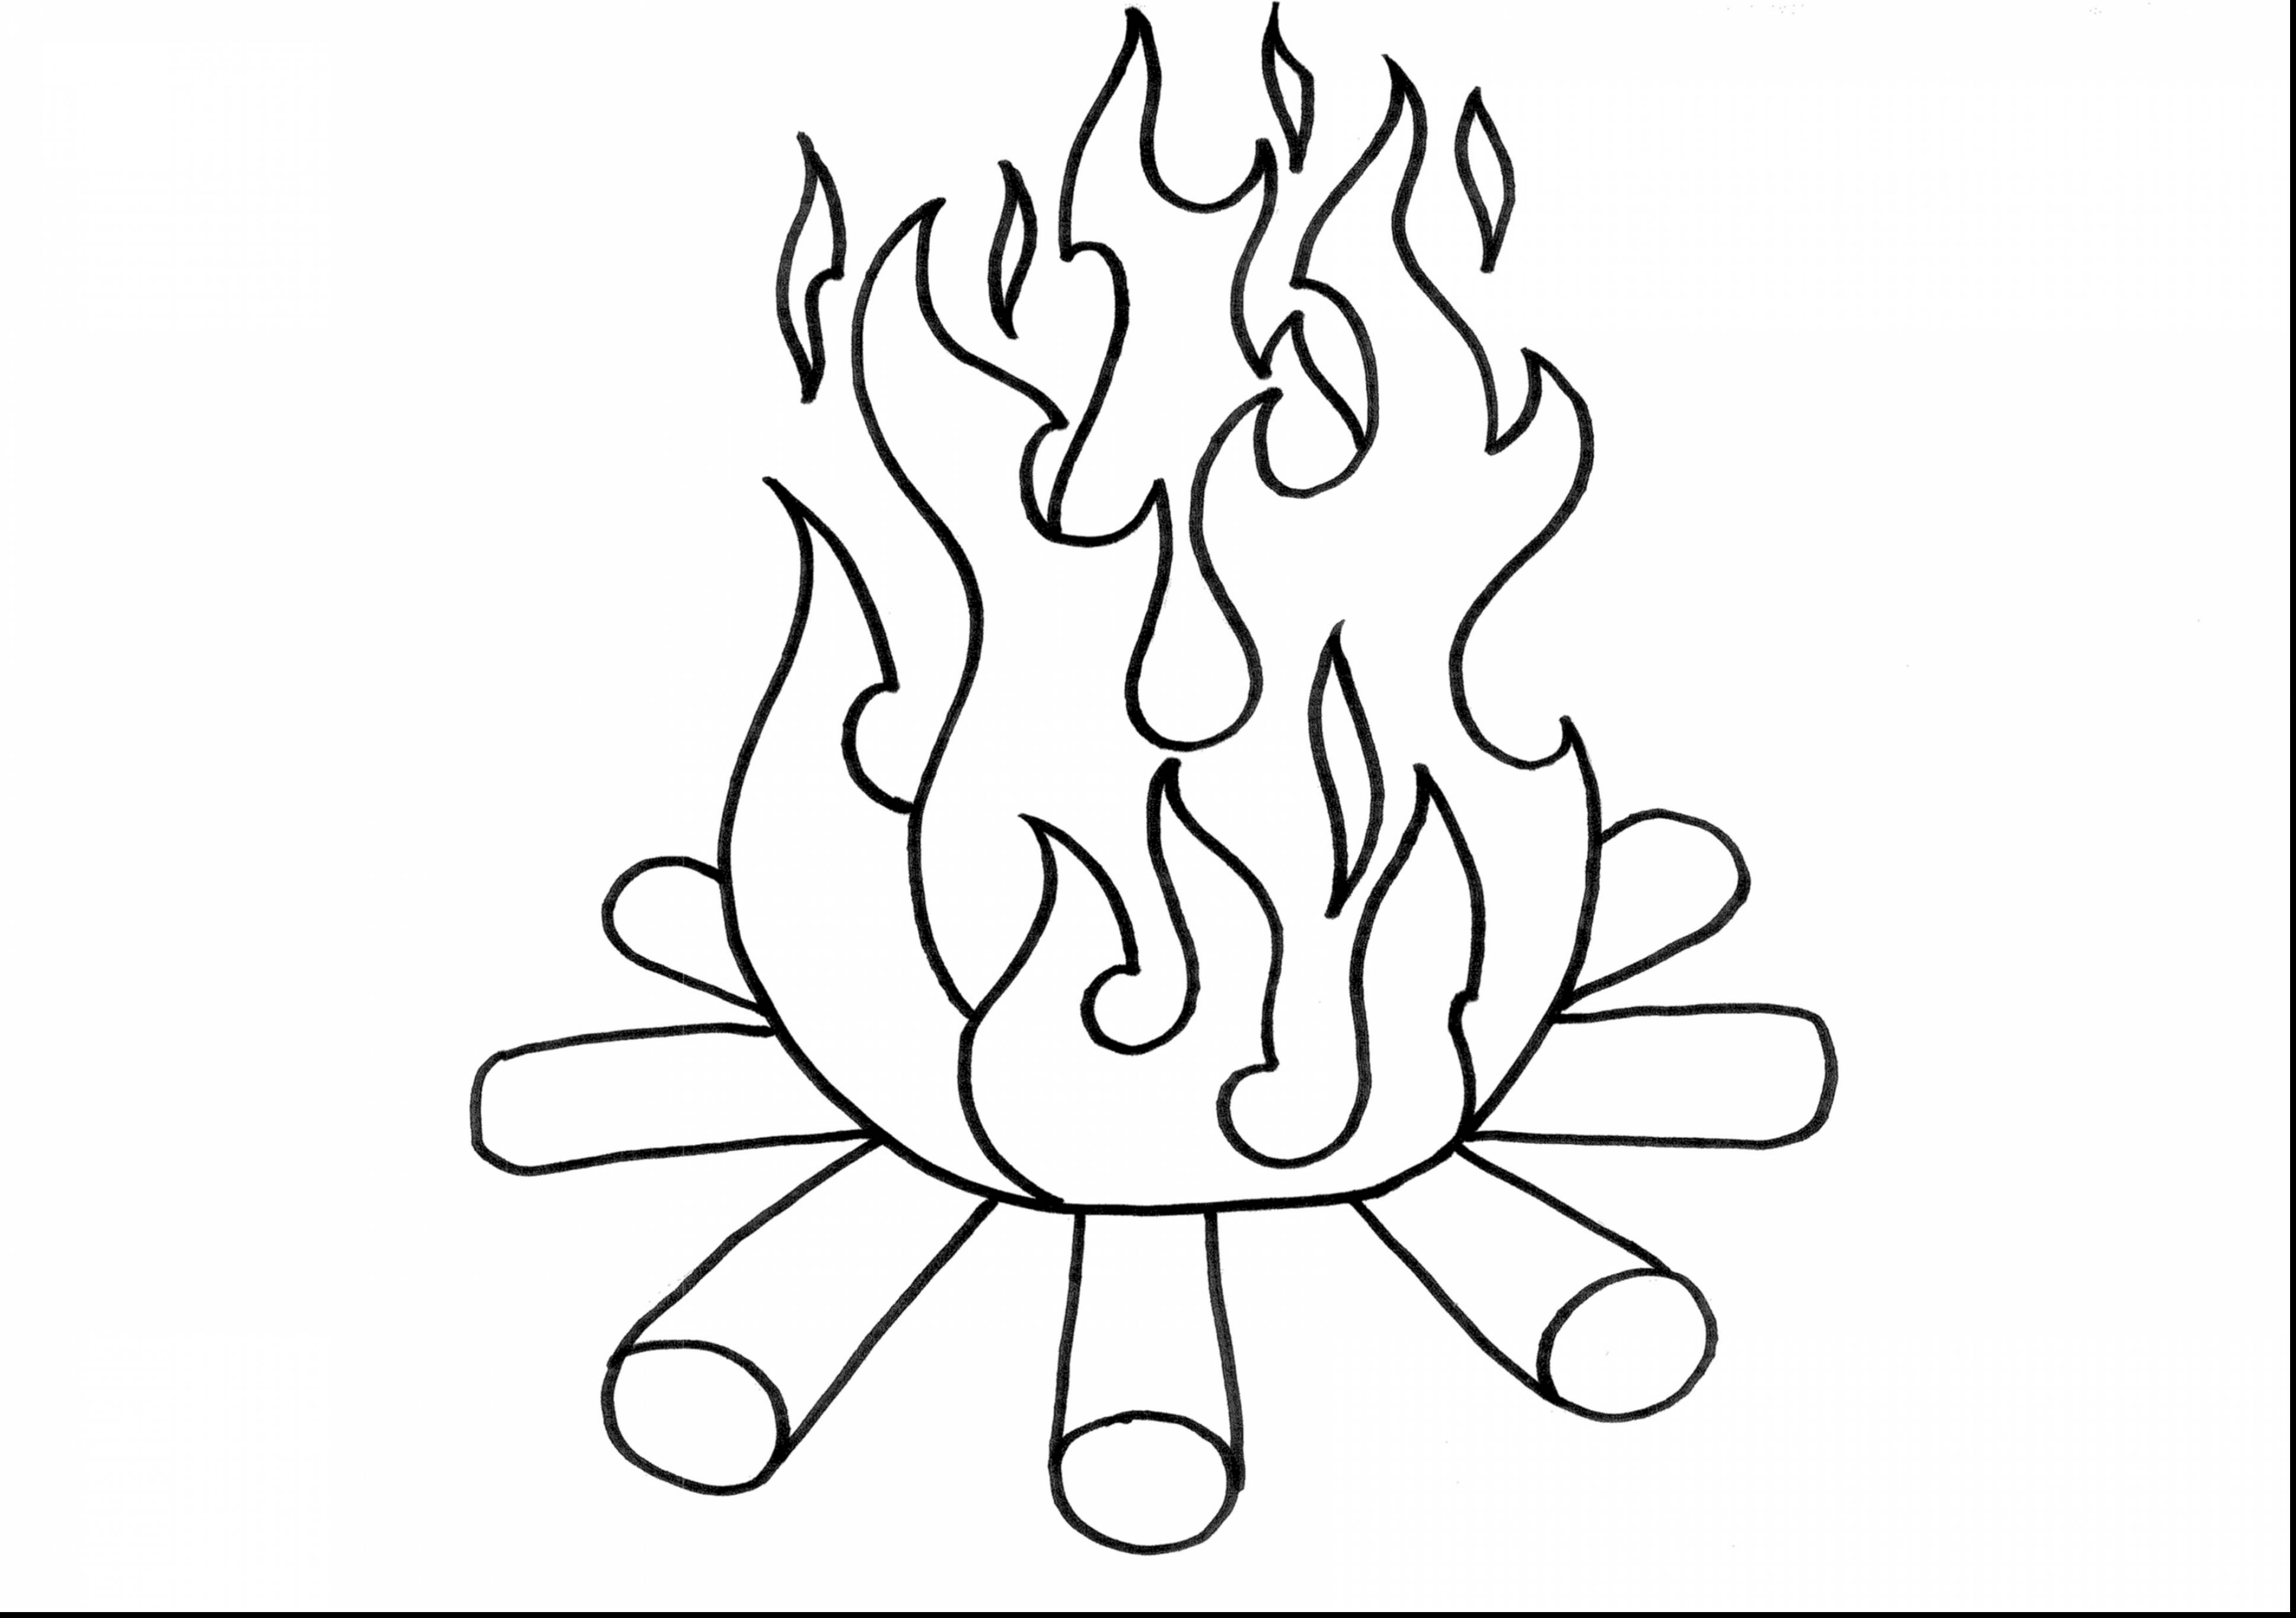 fire coloring page fire coloring pages download and print fire coloring pages page coloring fire